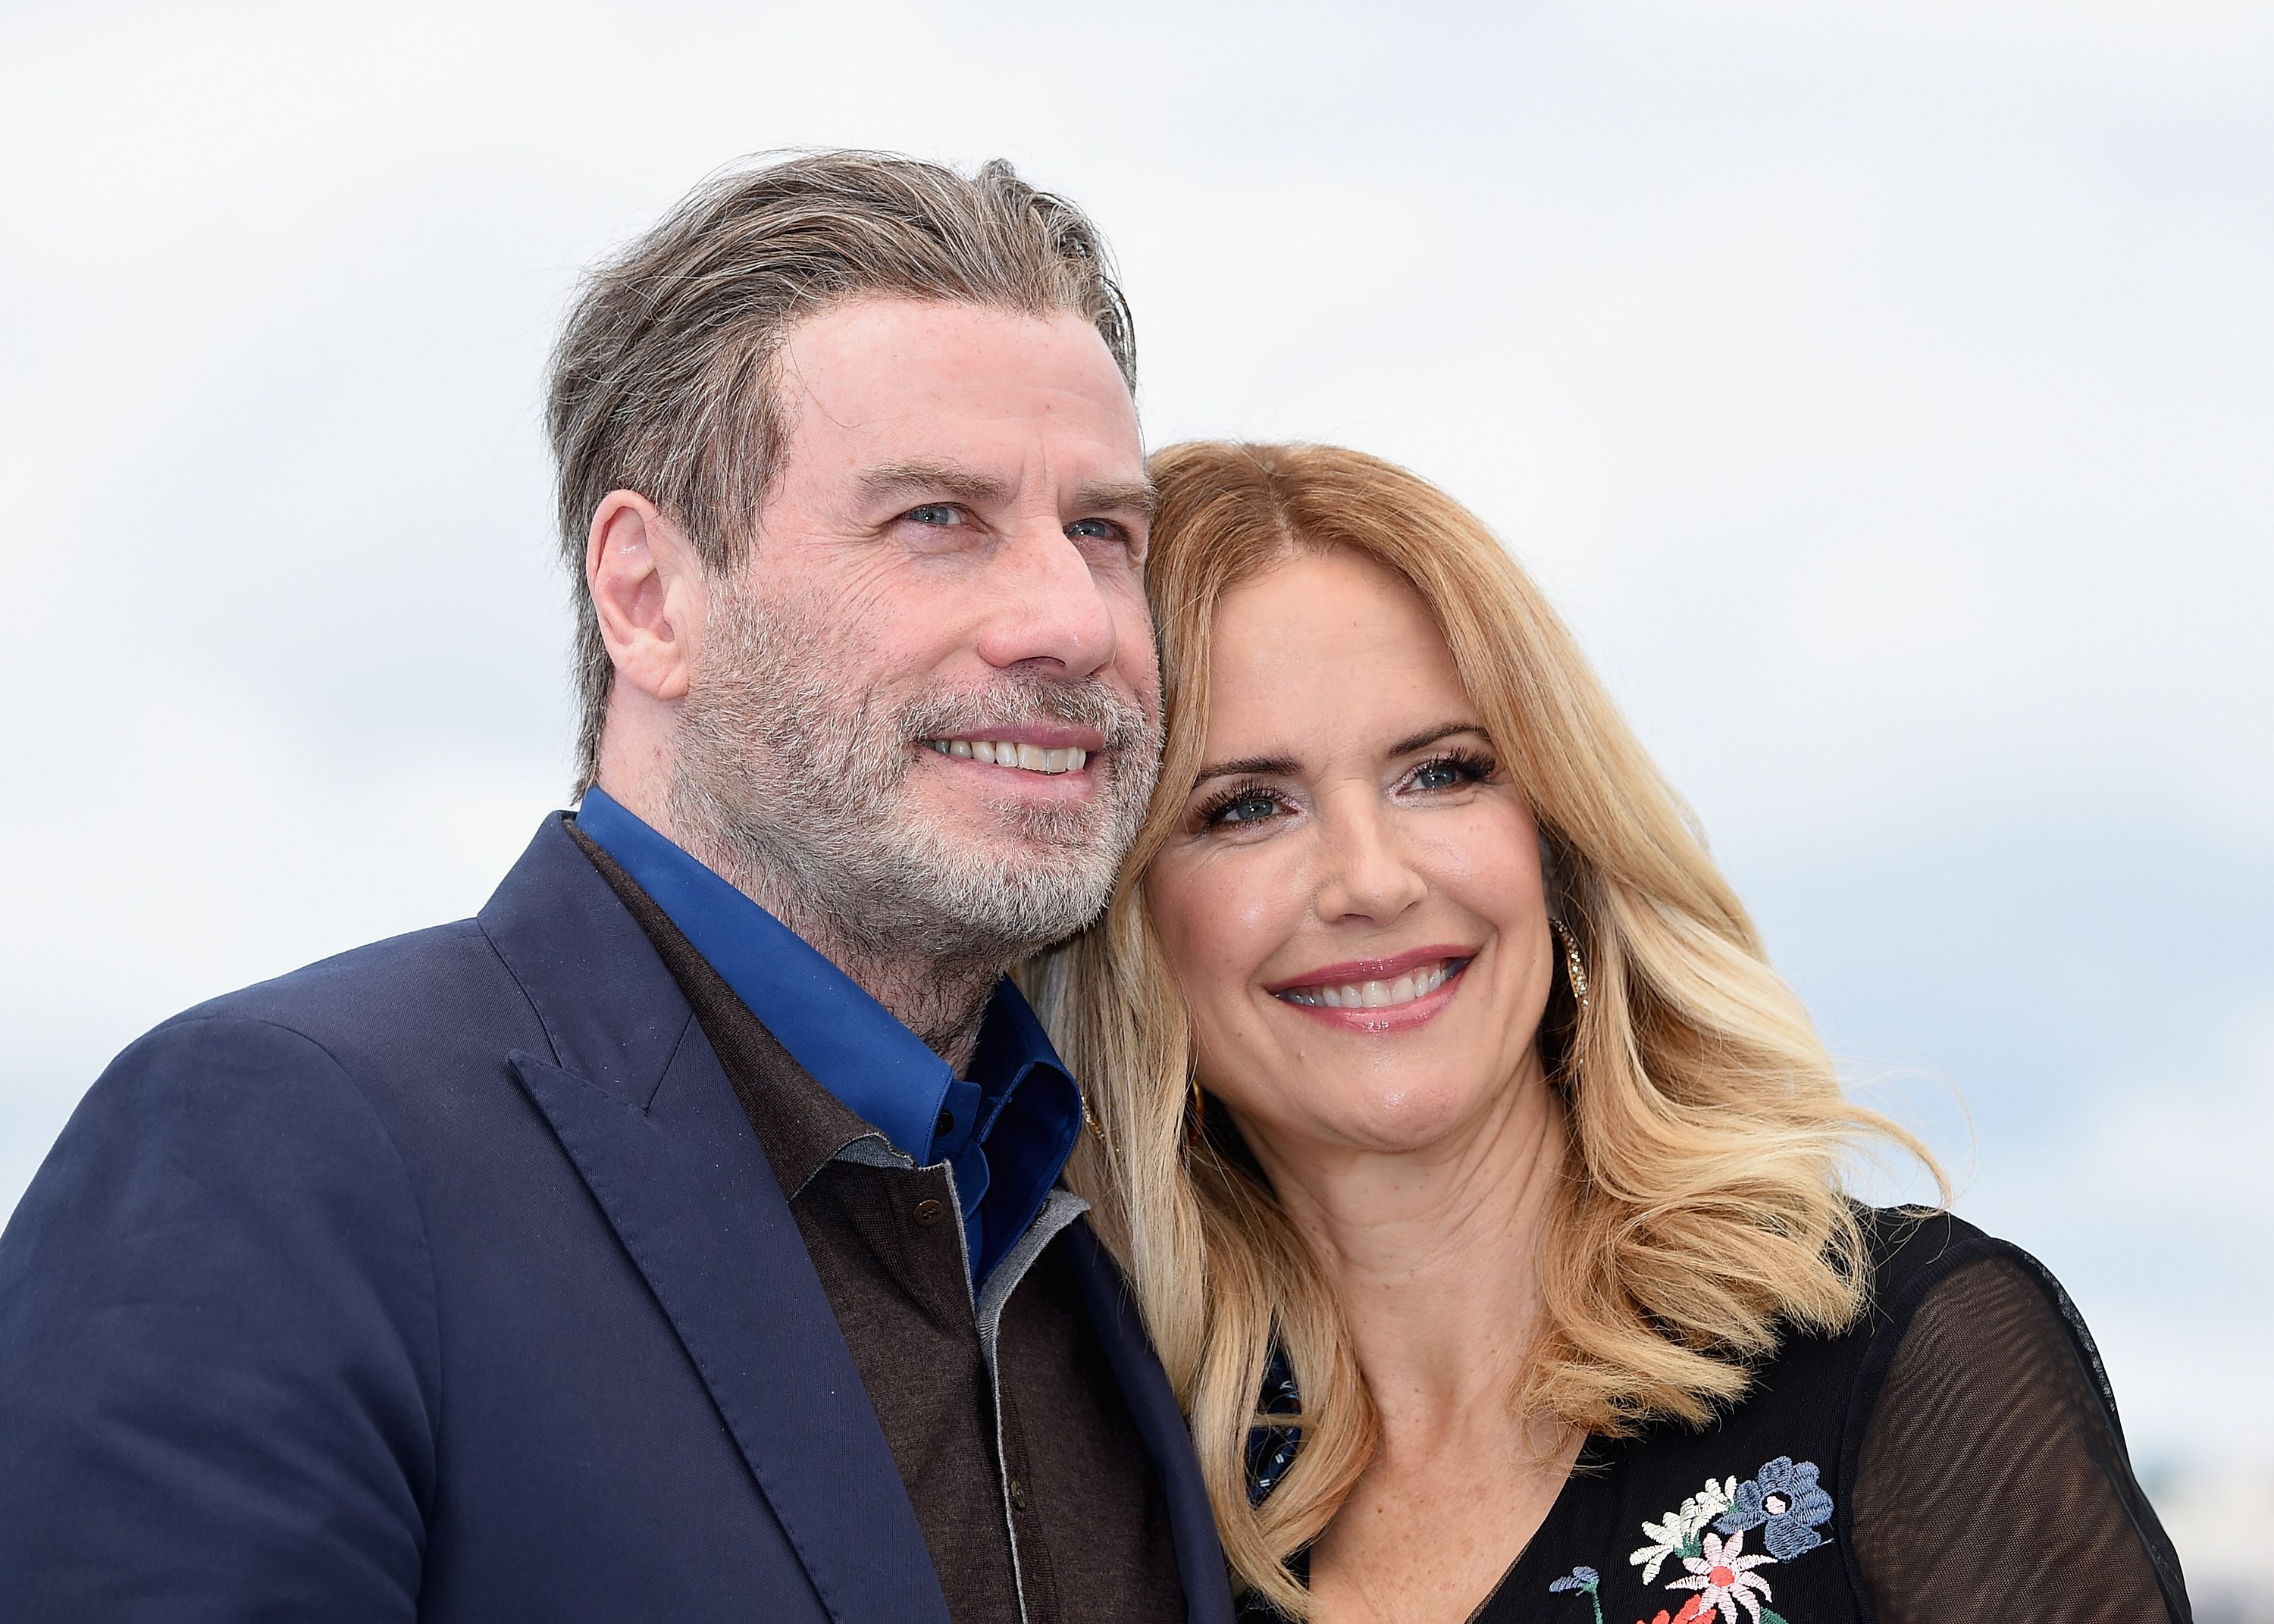 John Travolta and Kelly Preston at the 71st annual Cannes Film Festival in 2018 | Photo: Getty Images